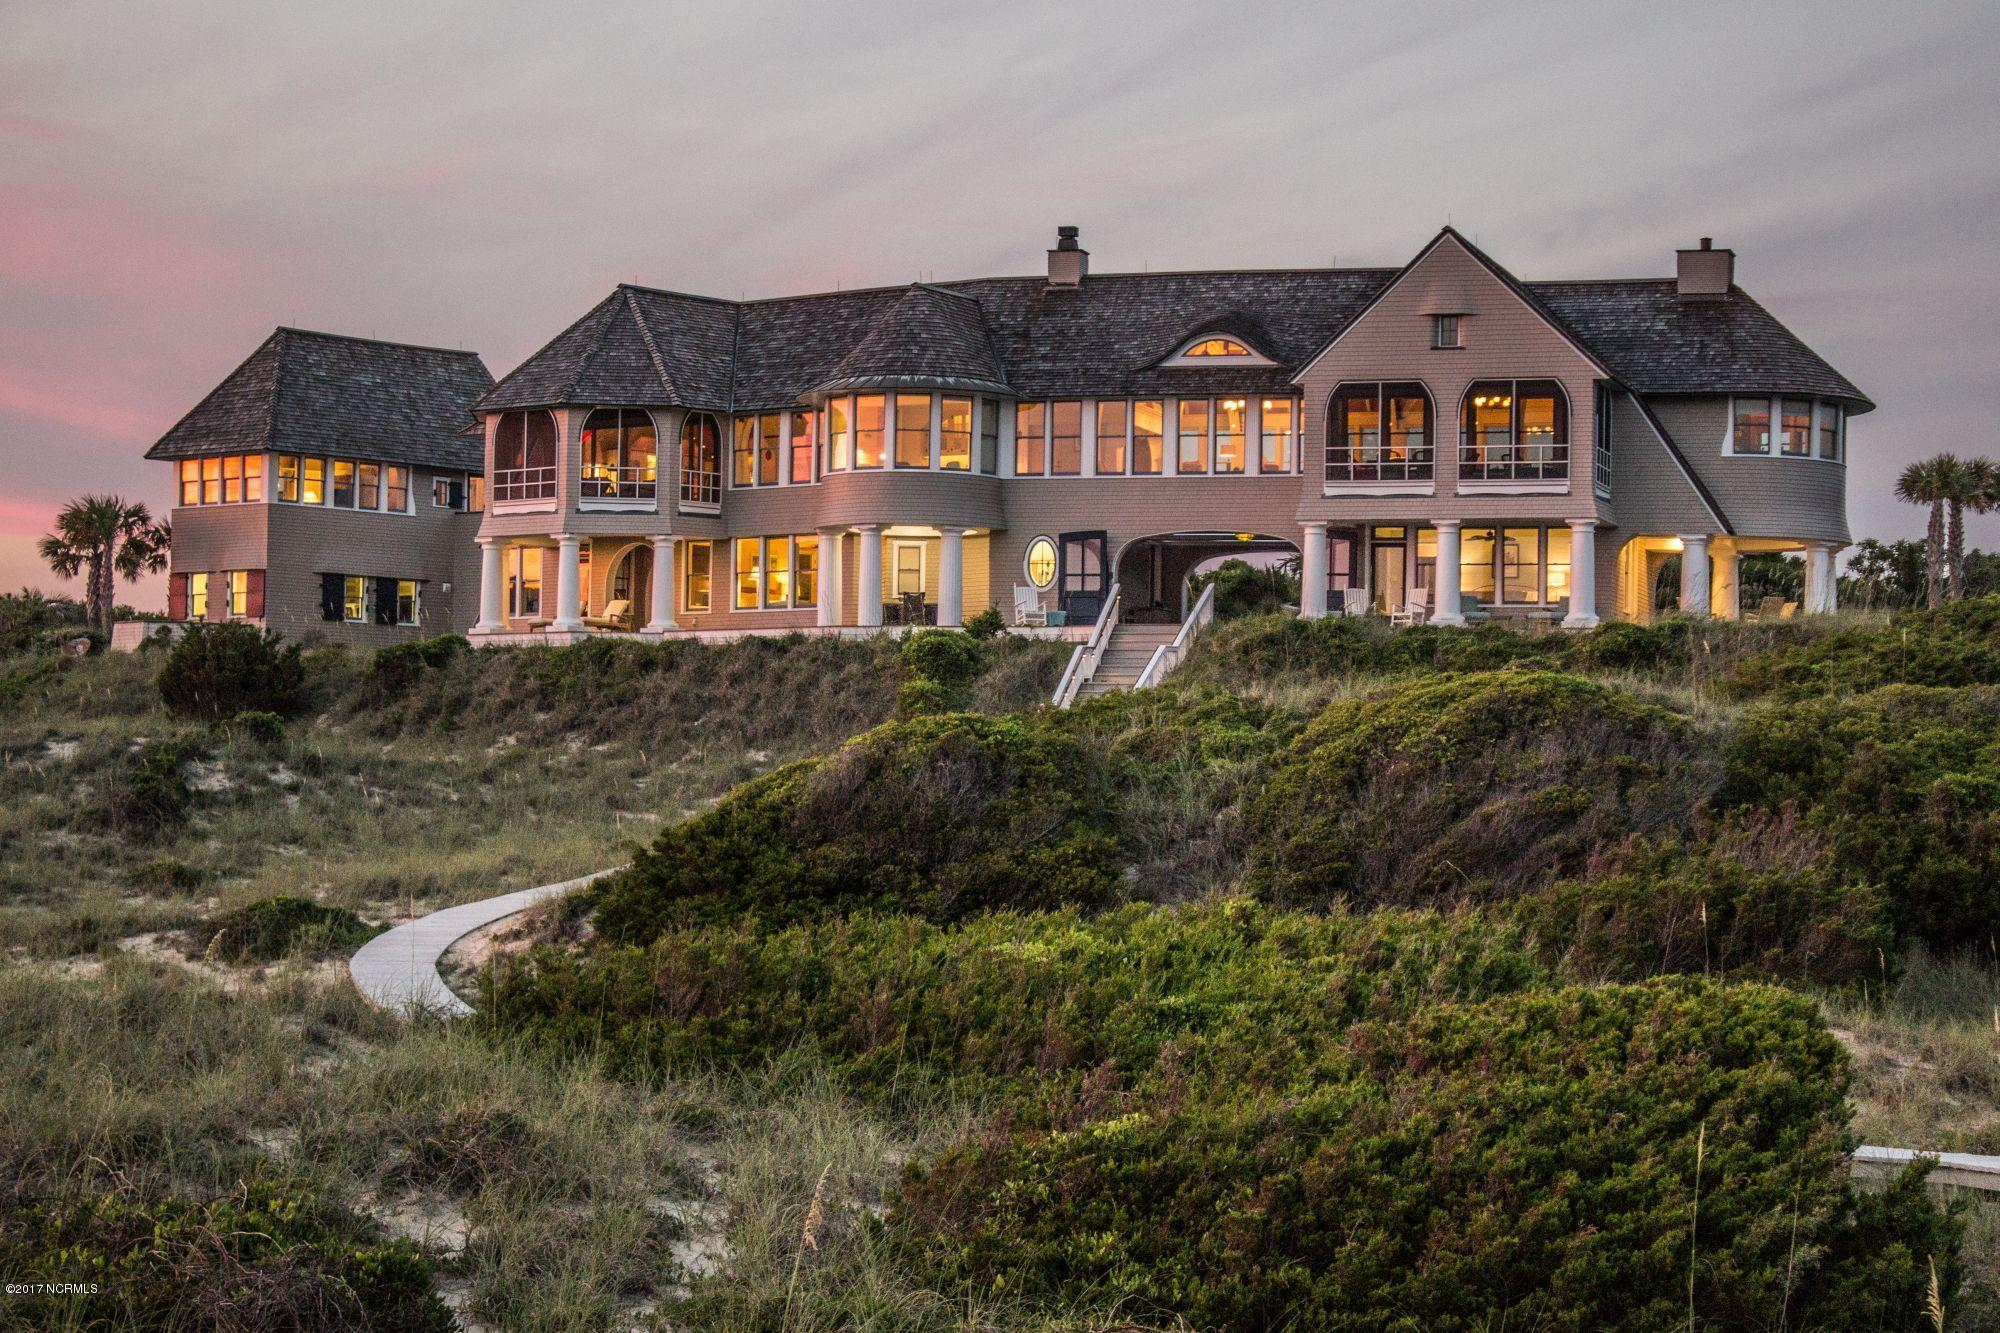 710 Shoals Watch Way, Bald Head Island, North Carolina